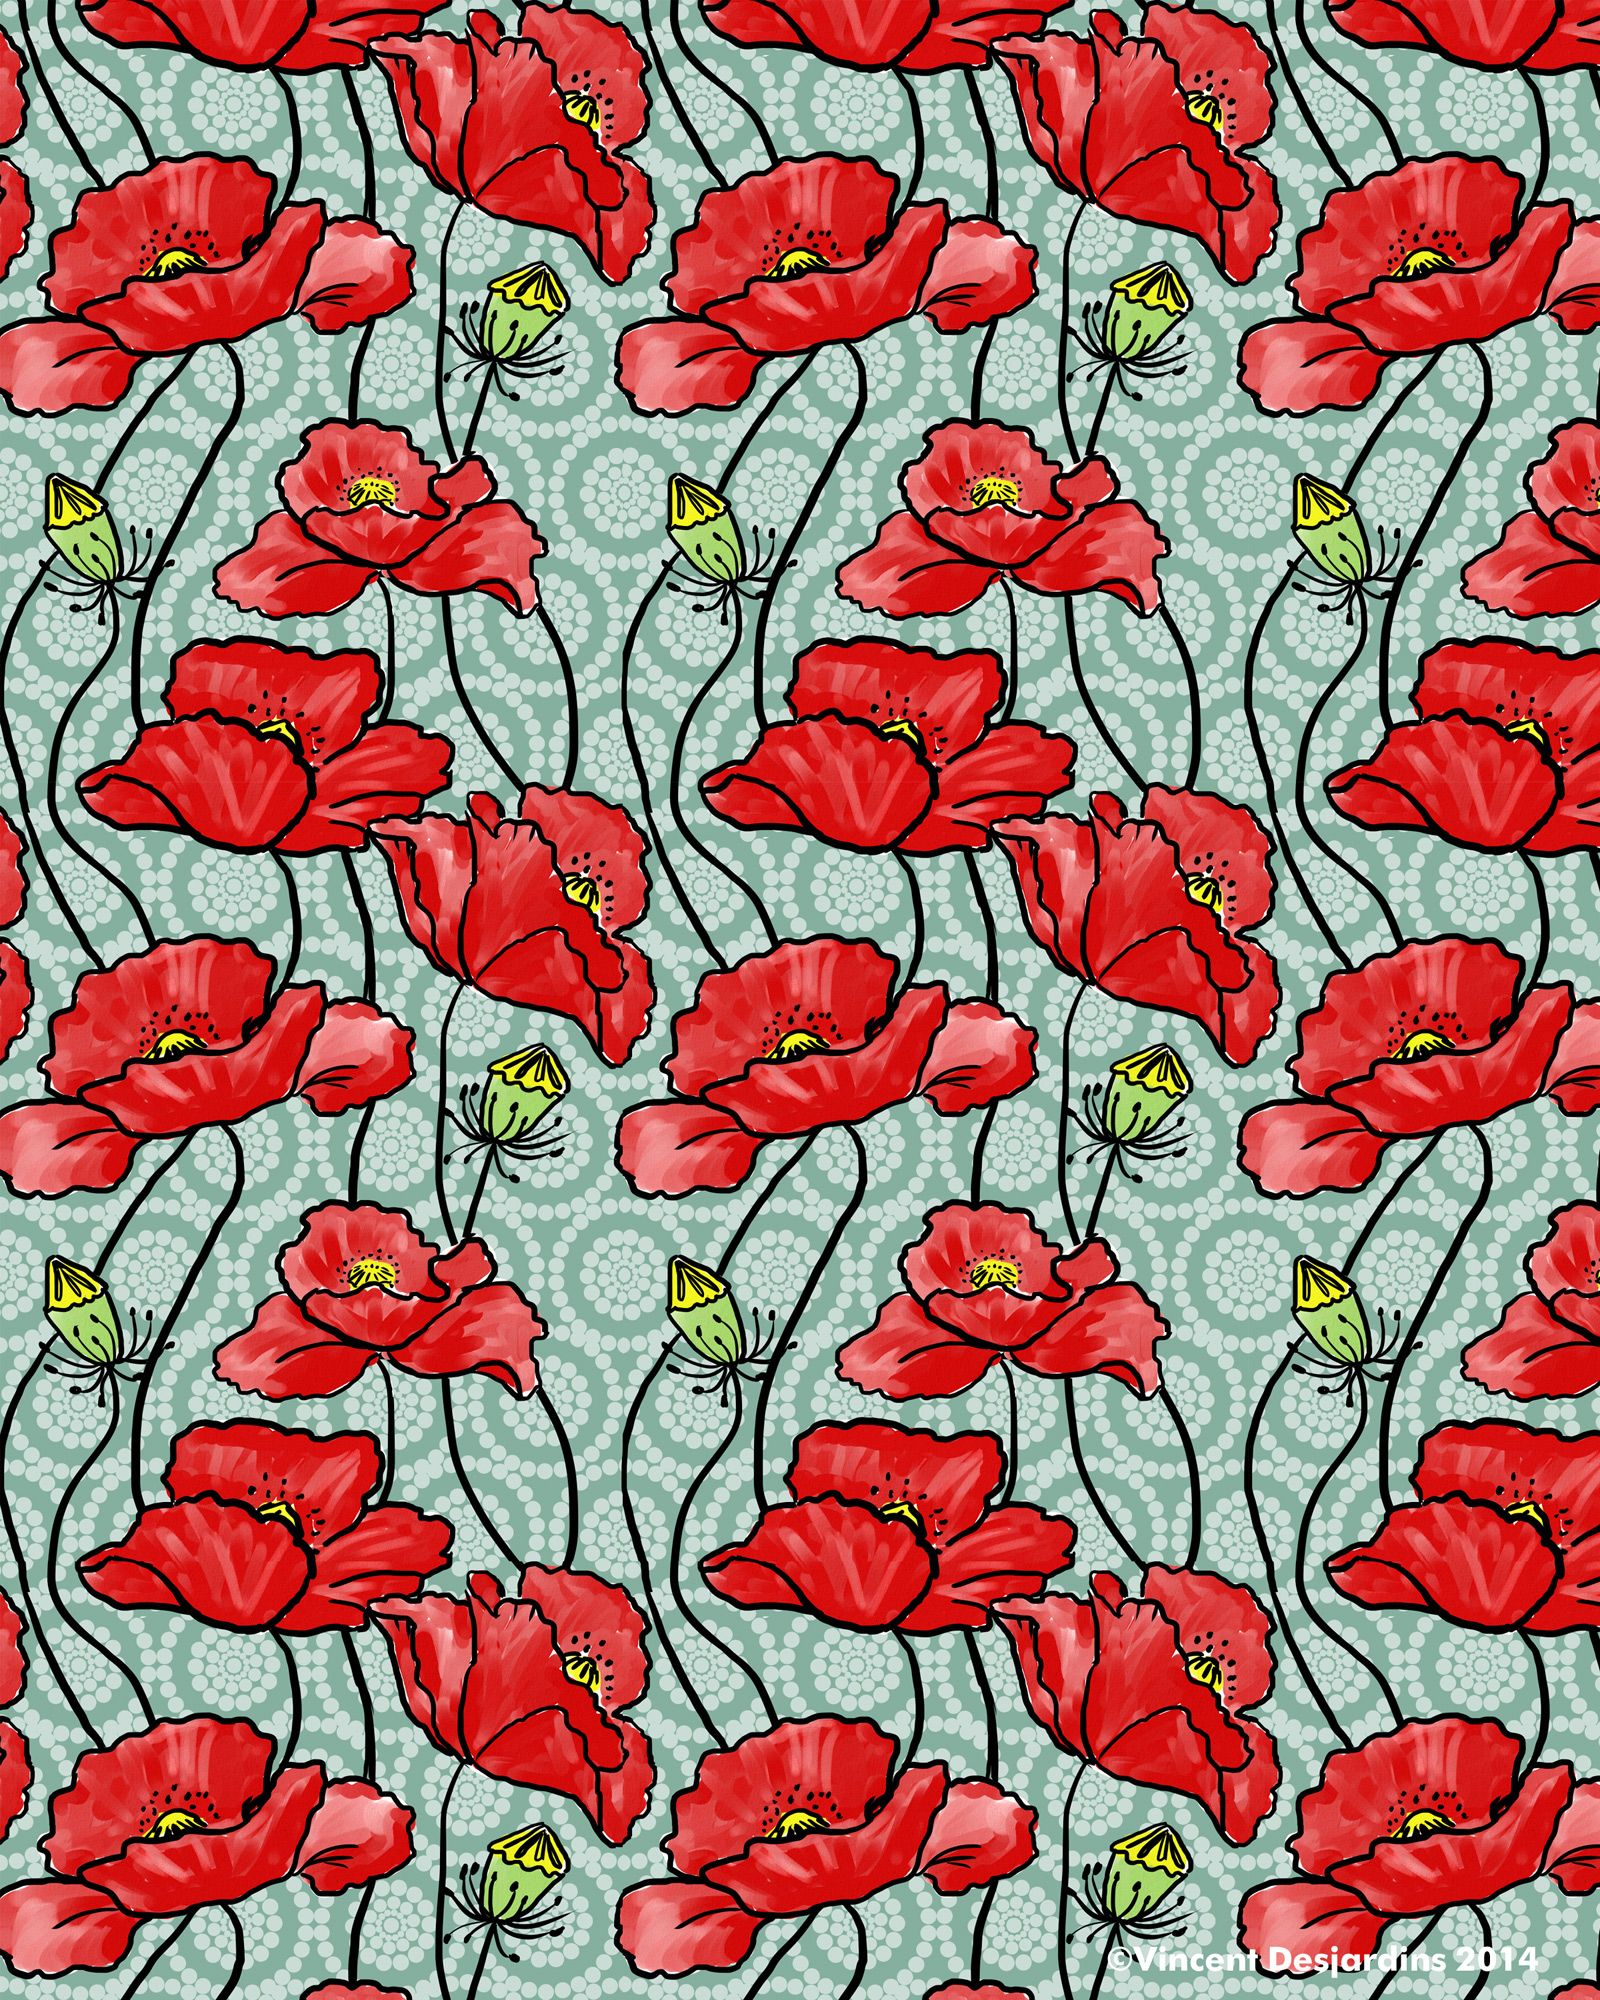 My red poppies and circles pattern the circular pattern in the